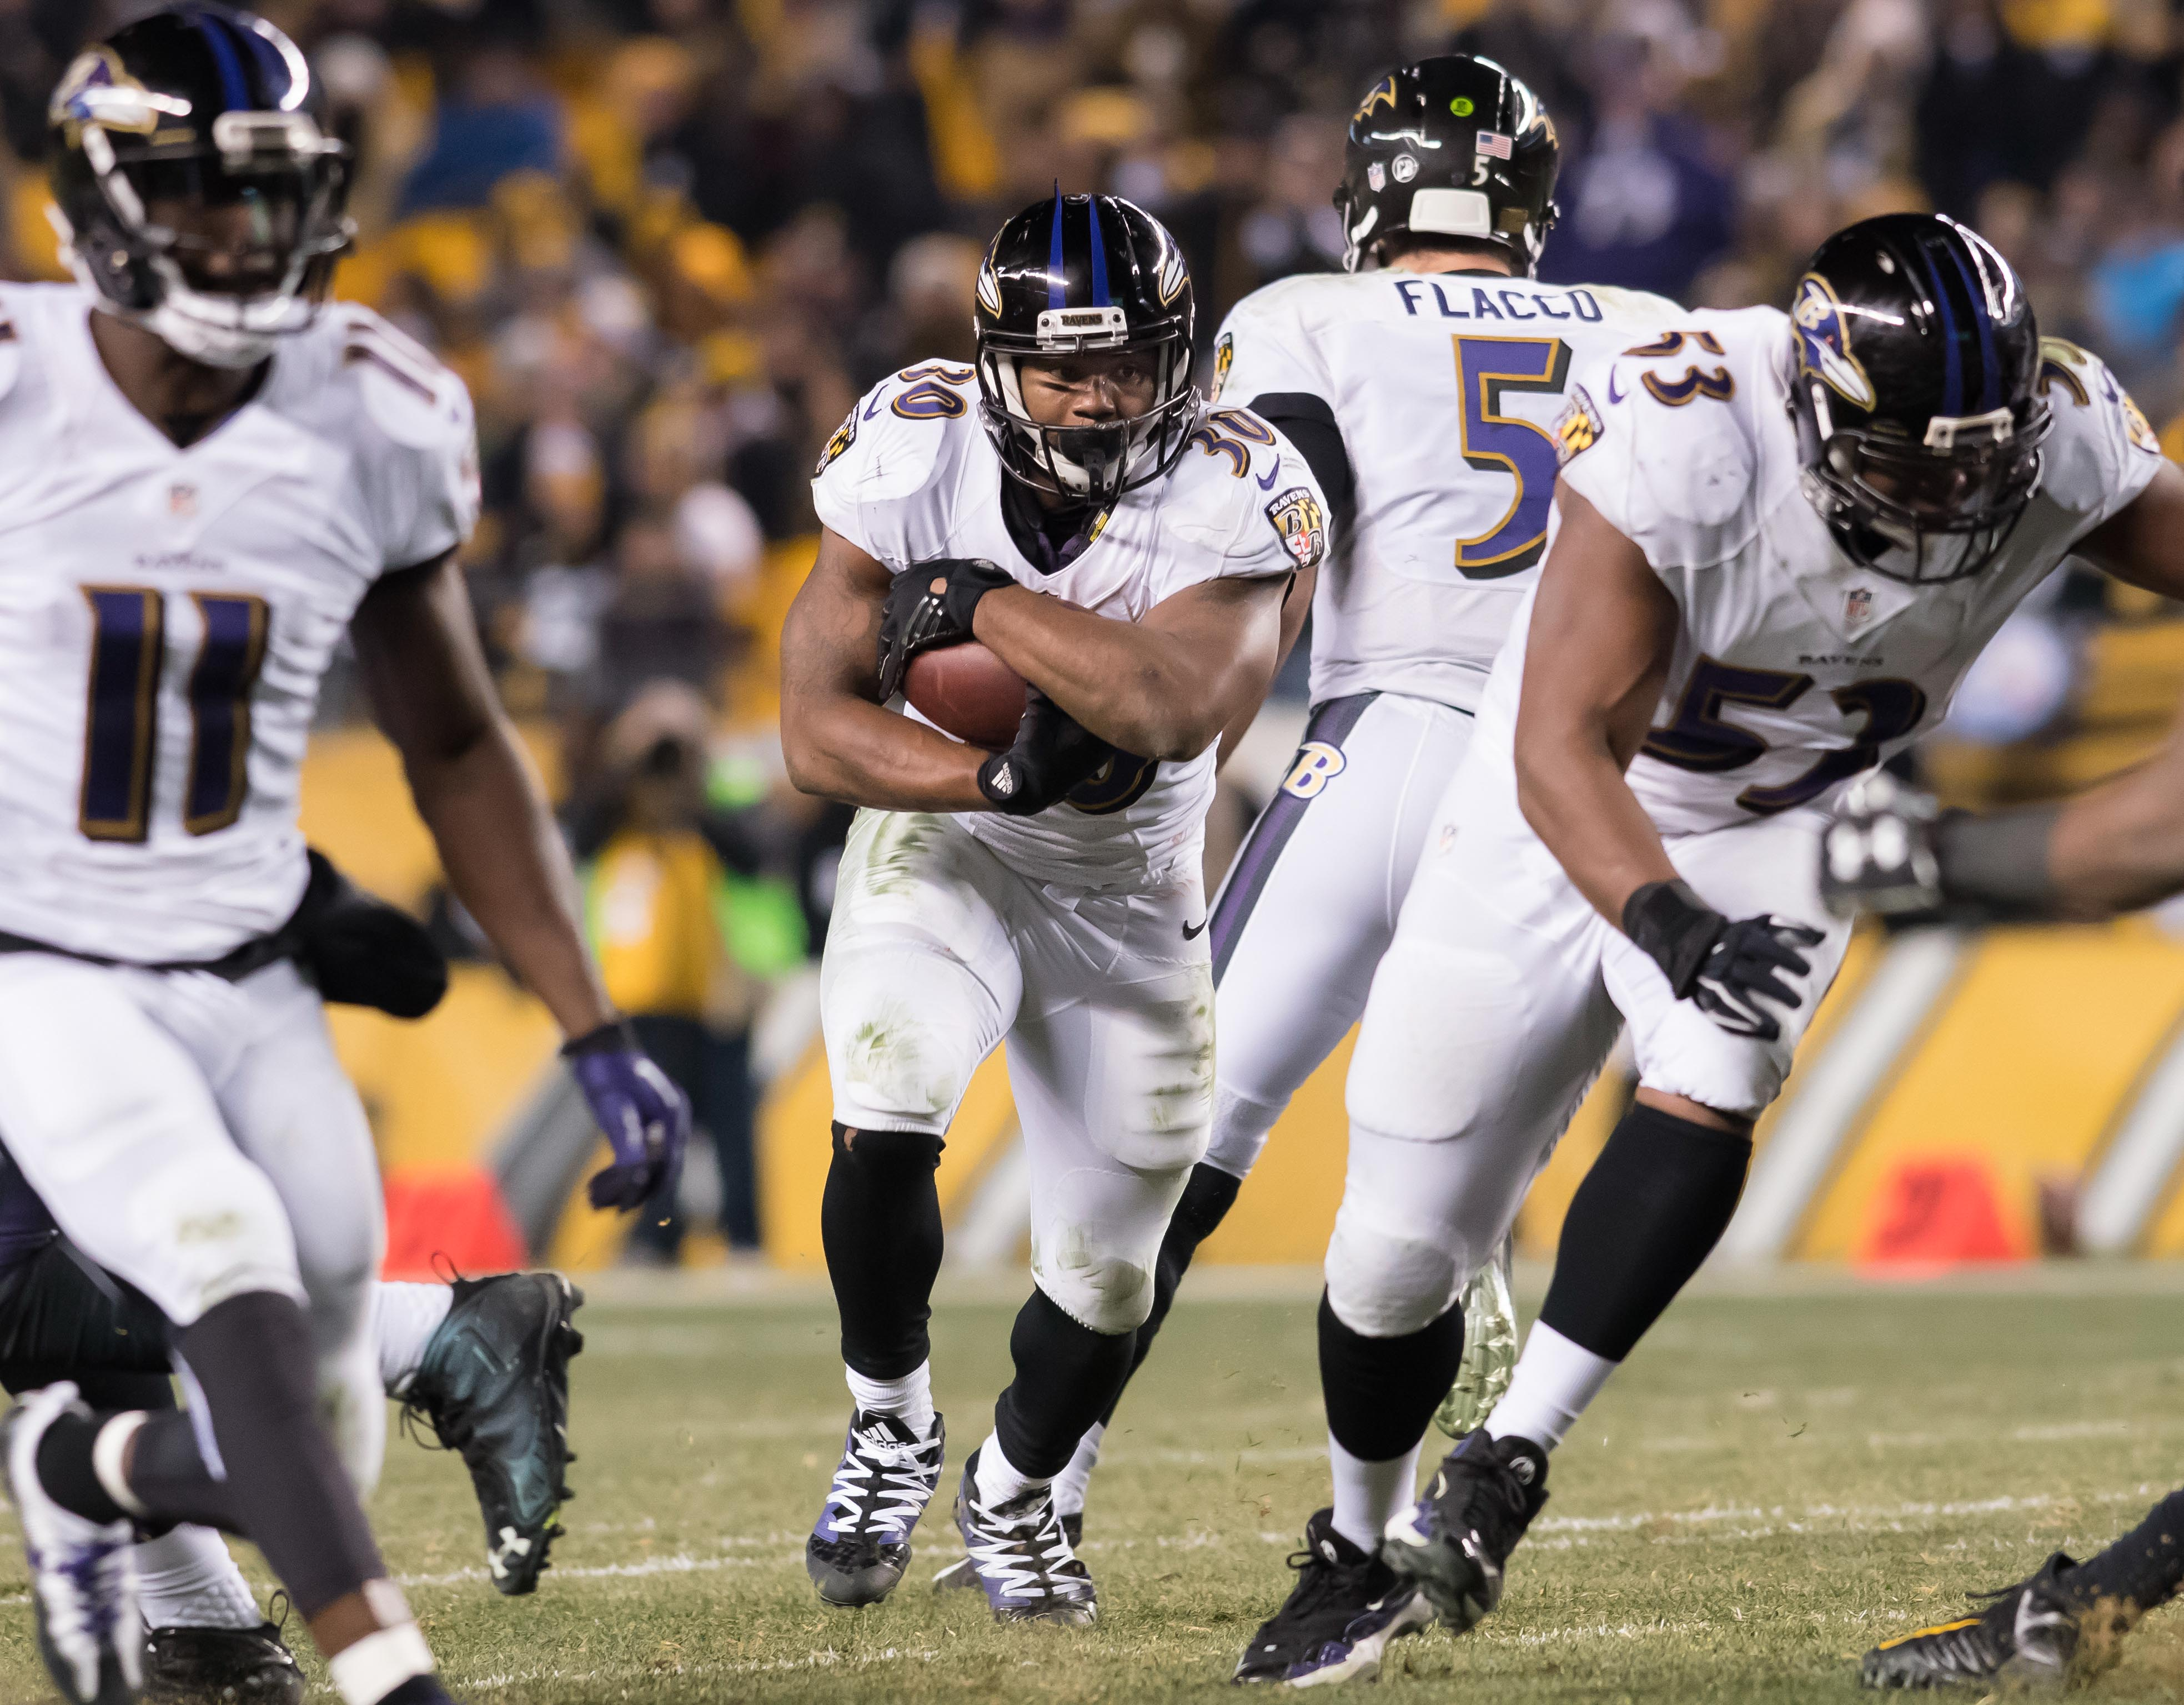 9785777-nfl-baltimore-ravens-at-pittsburgh-steelers